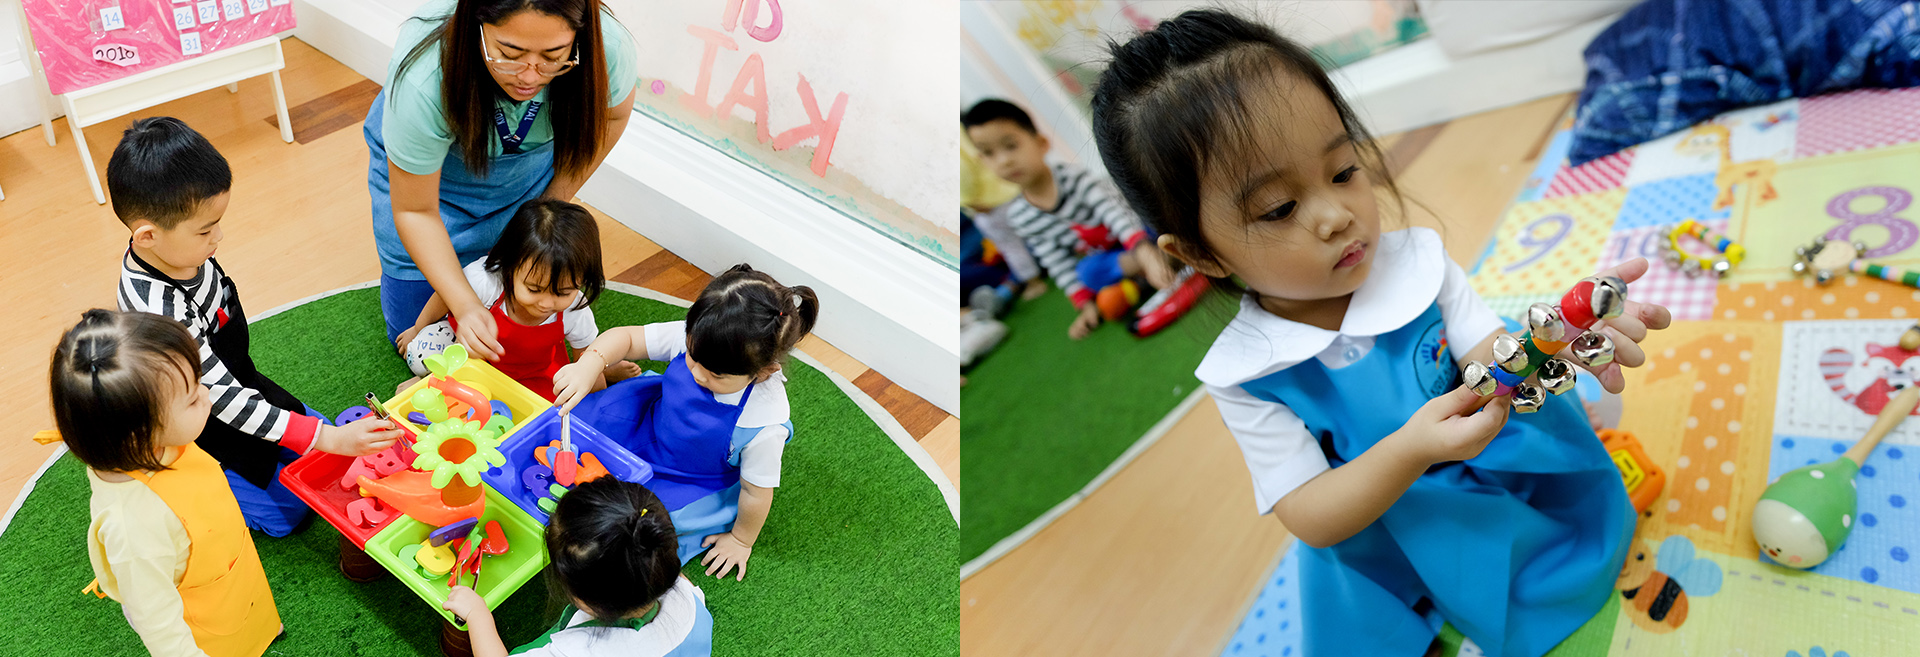 kids academy international - Daycare